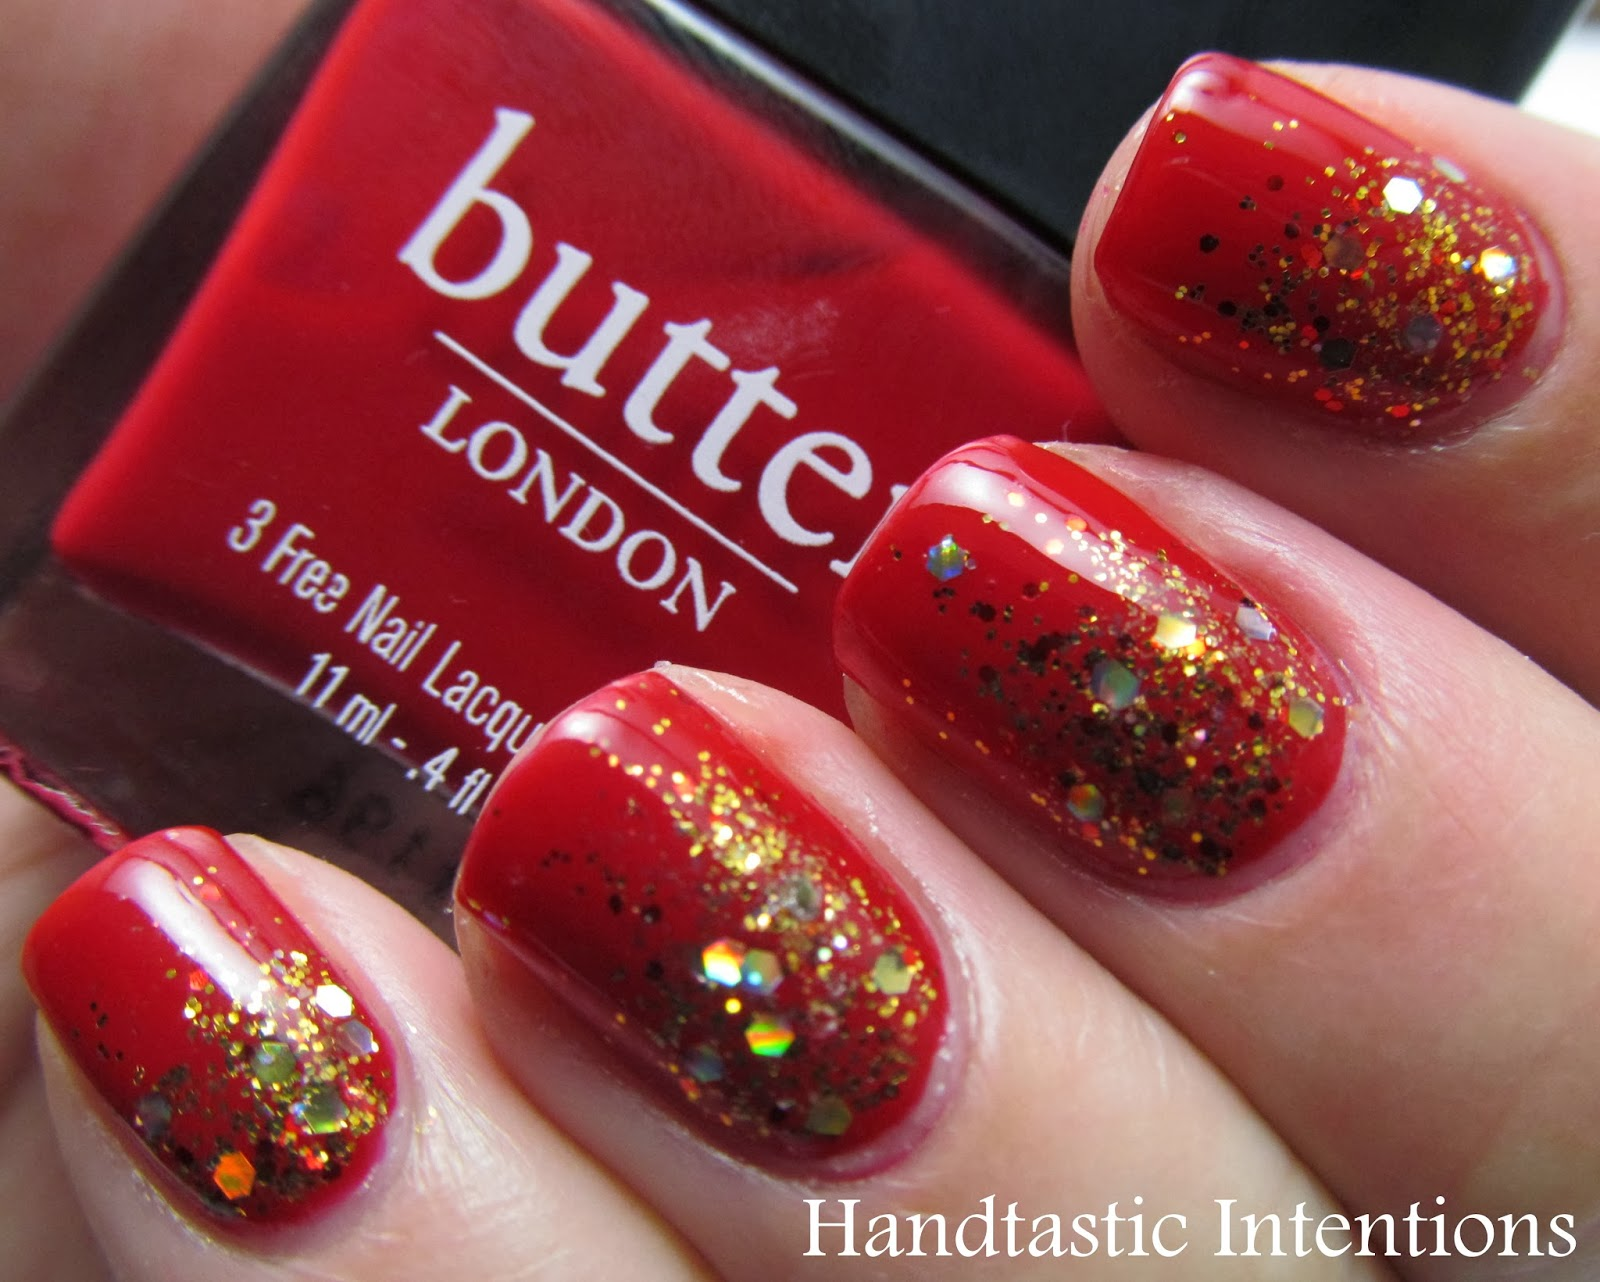 Handtastic intentions nail art chinese new year nails nail art chinese new year nails prinsesfo Choice Image